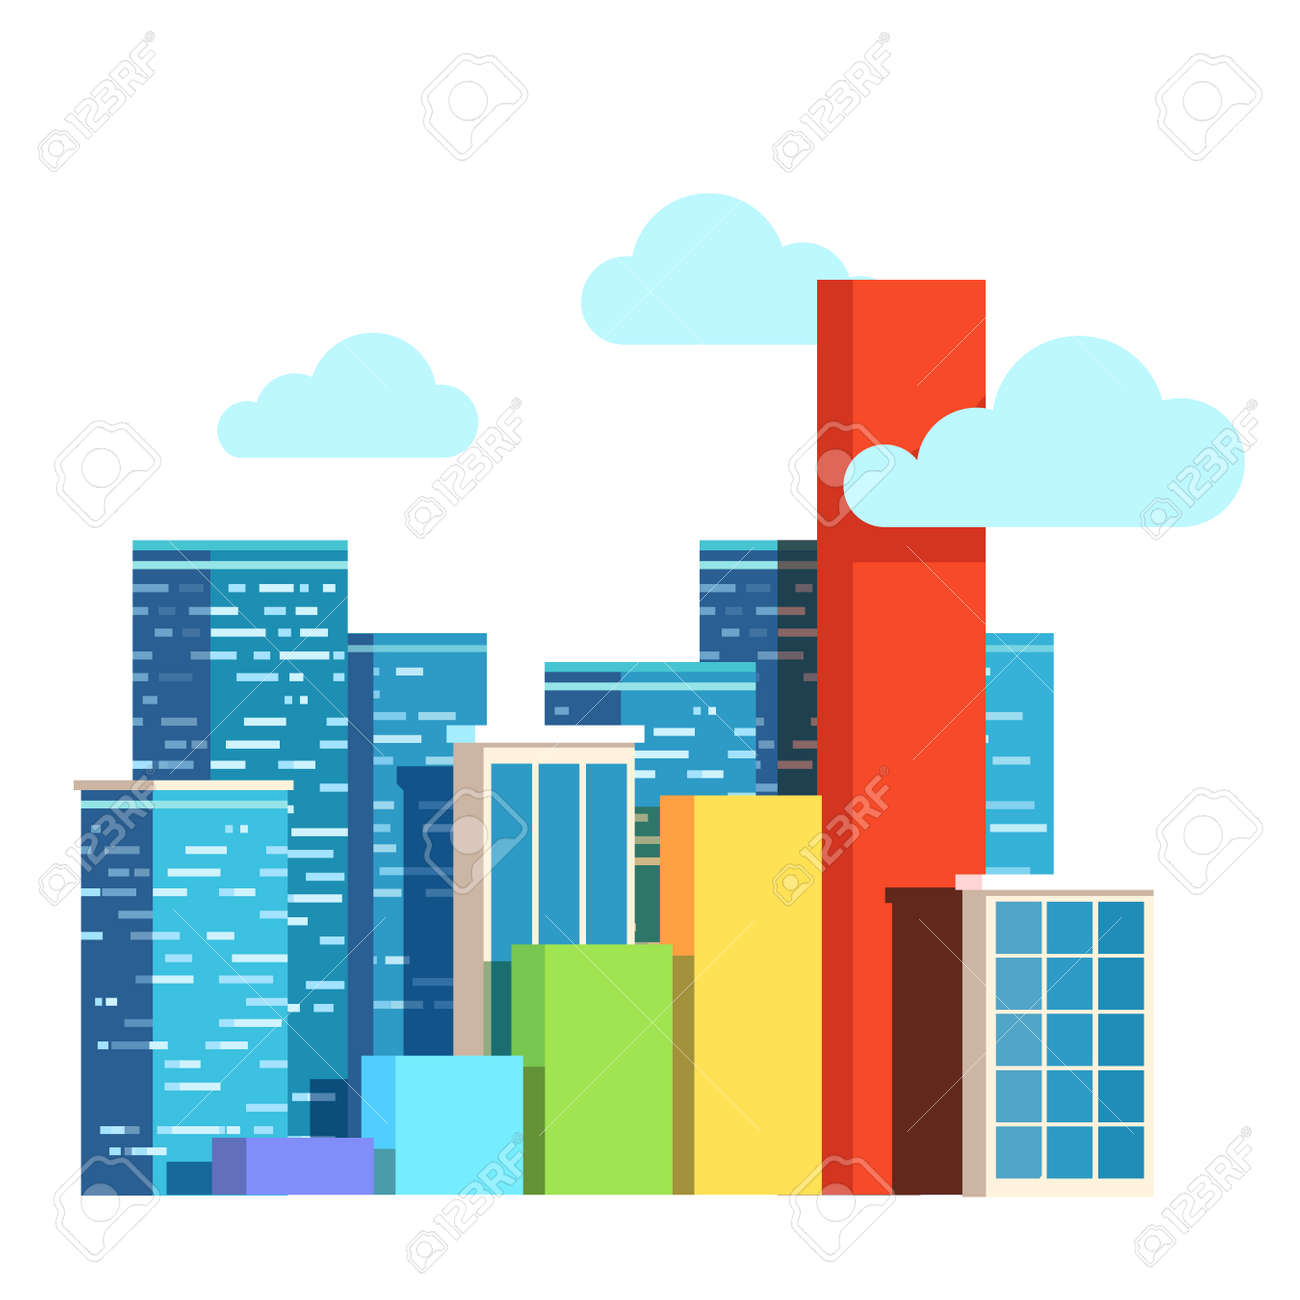 city growth concept real estate prices upgrowth bar chart urban rh 123rf com vector city background vector city center, houston, tx